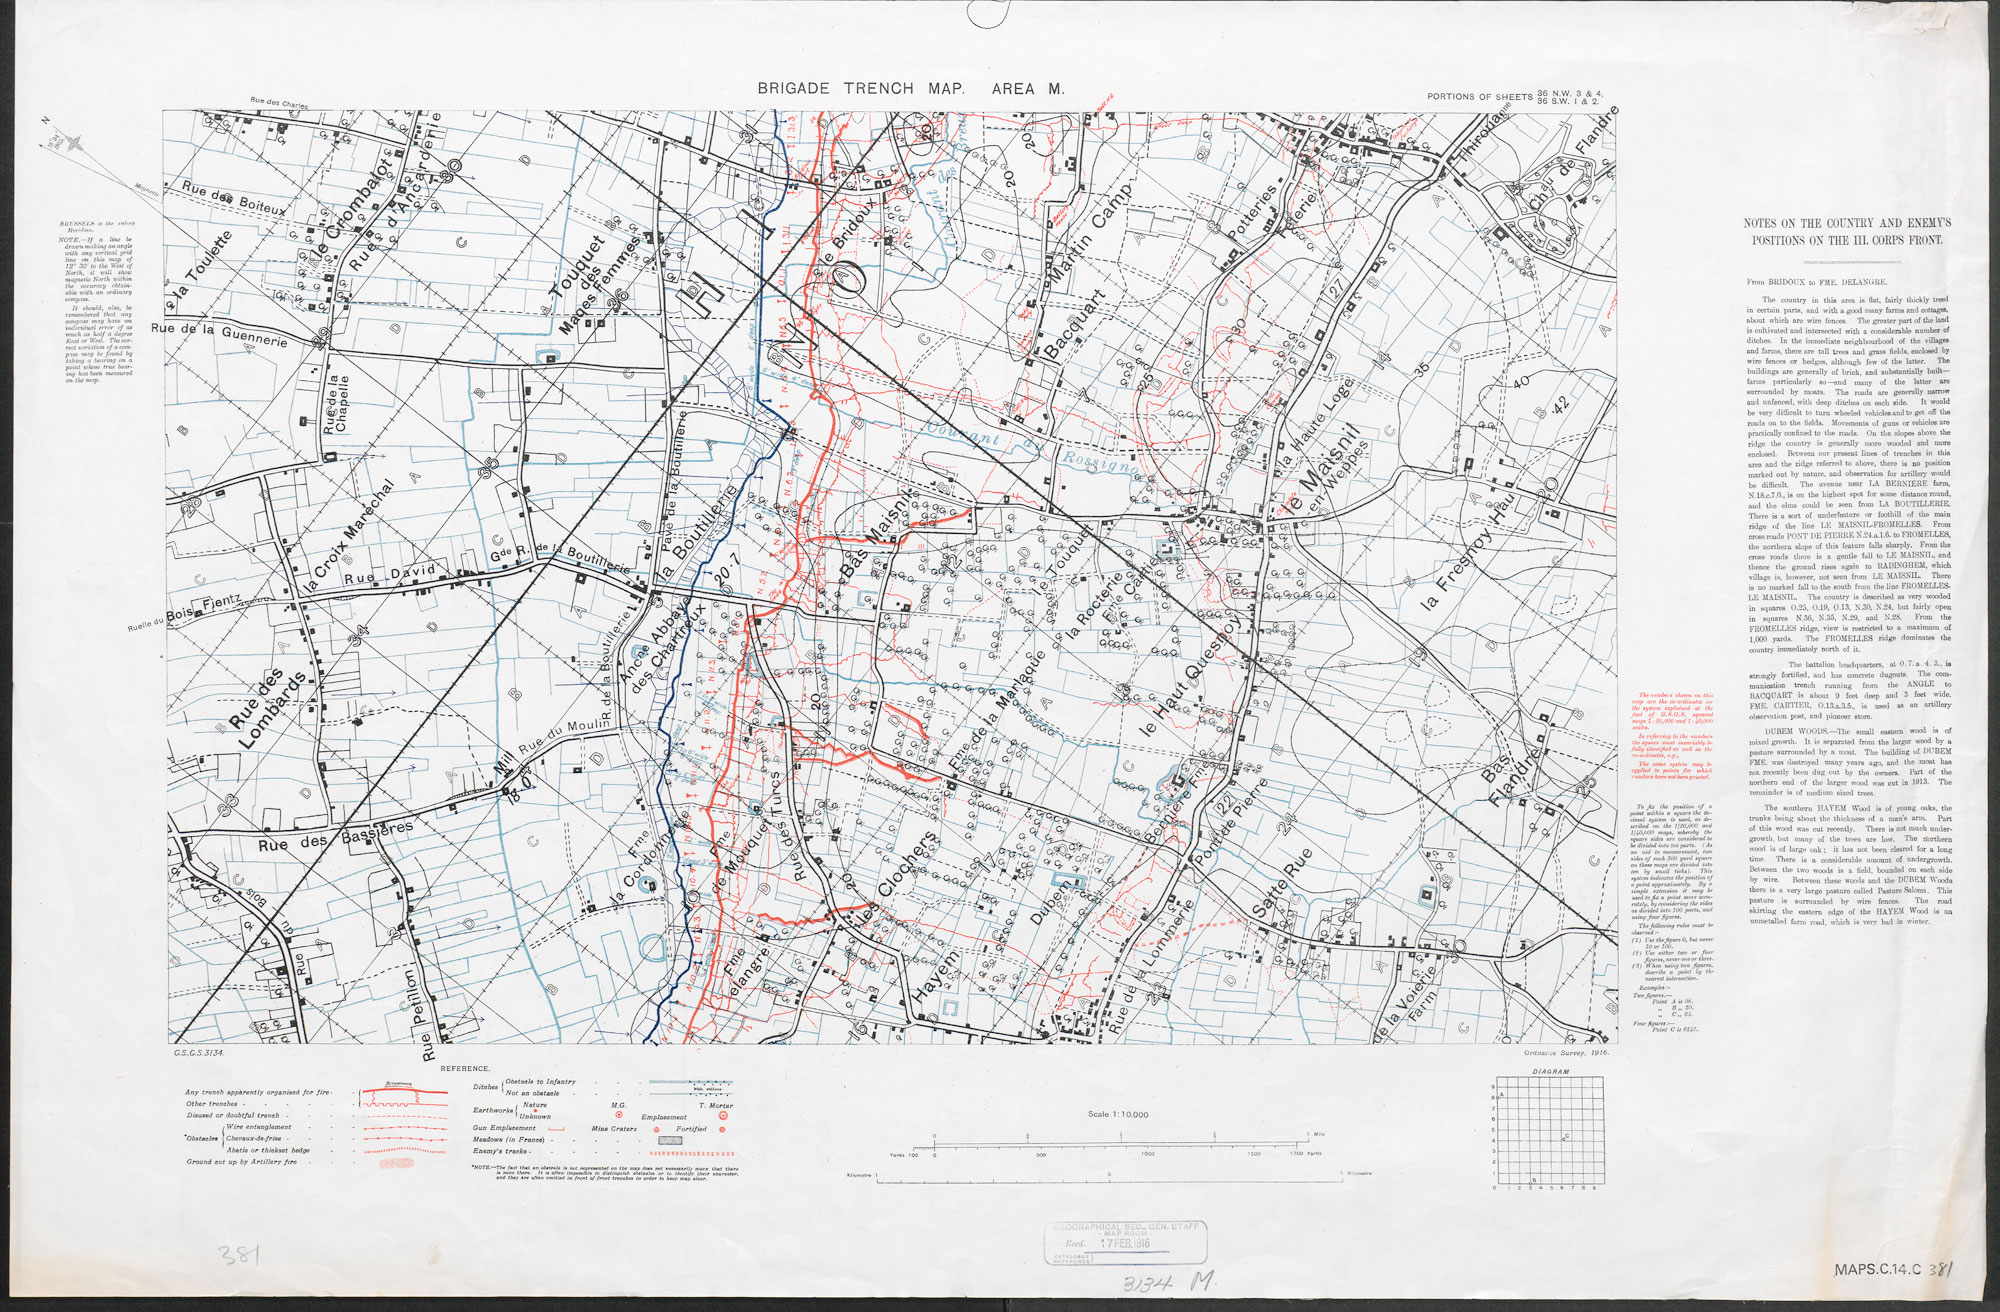 A detailed trench map covering the area south of Loos in 1916. The German trenches are in red, the British – distorted, in case the map was captured – in blue.